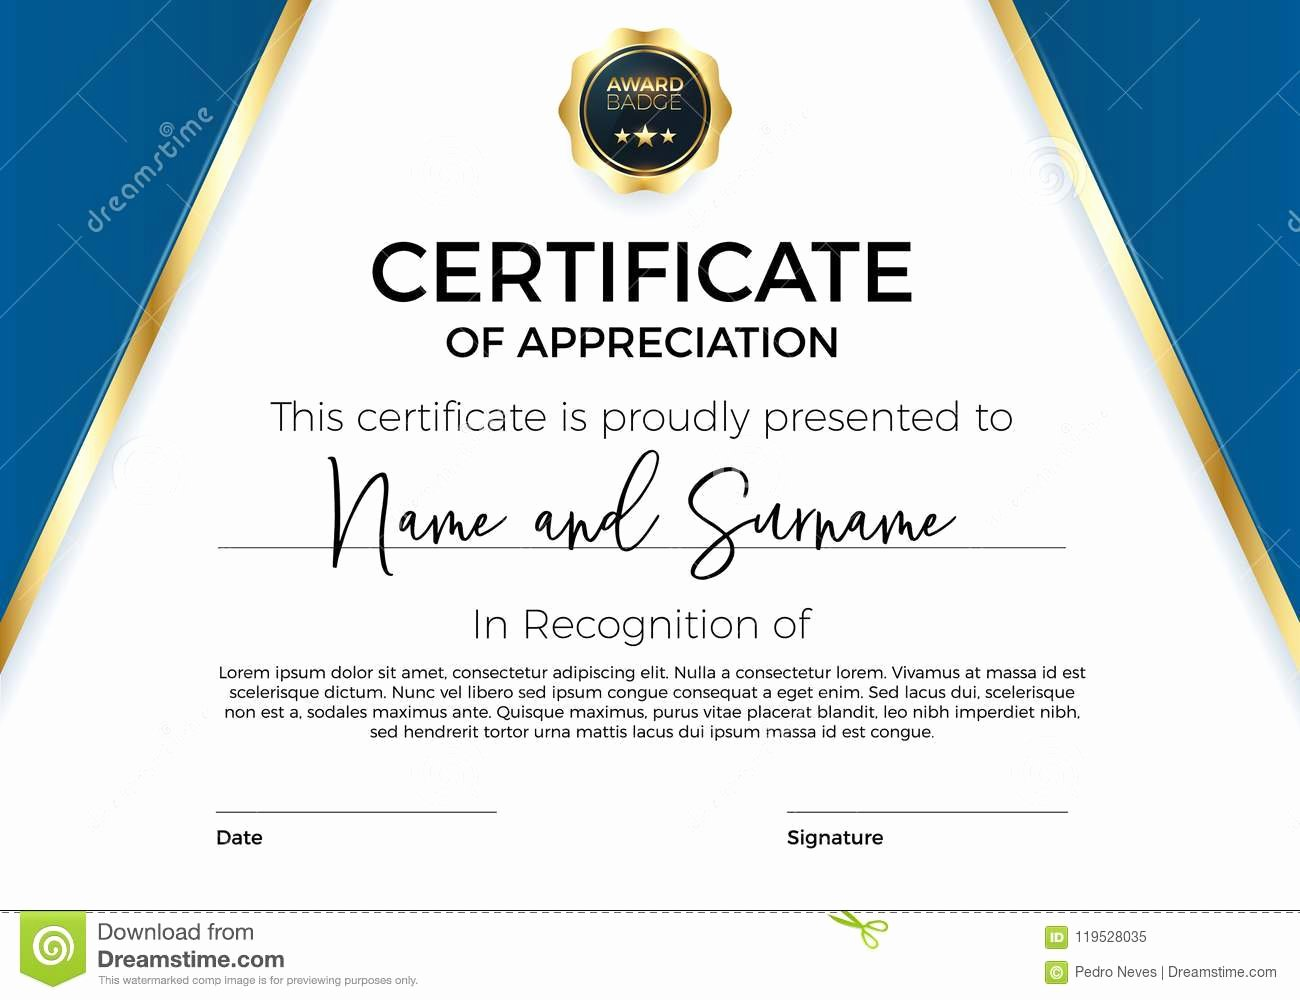 Army Certificate Of Appreciation Template Ppt Best Of Certificate Appreciation Achievement with Award